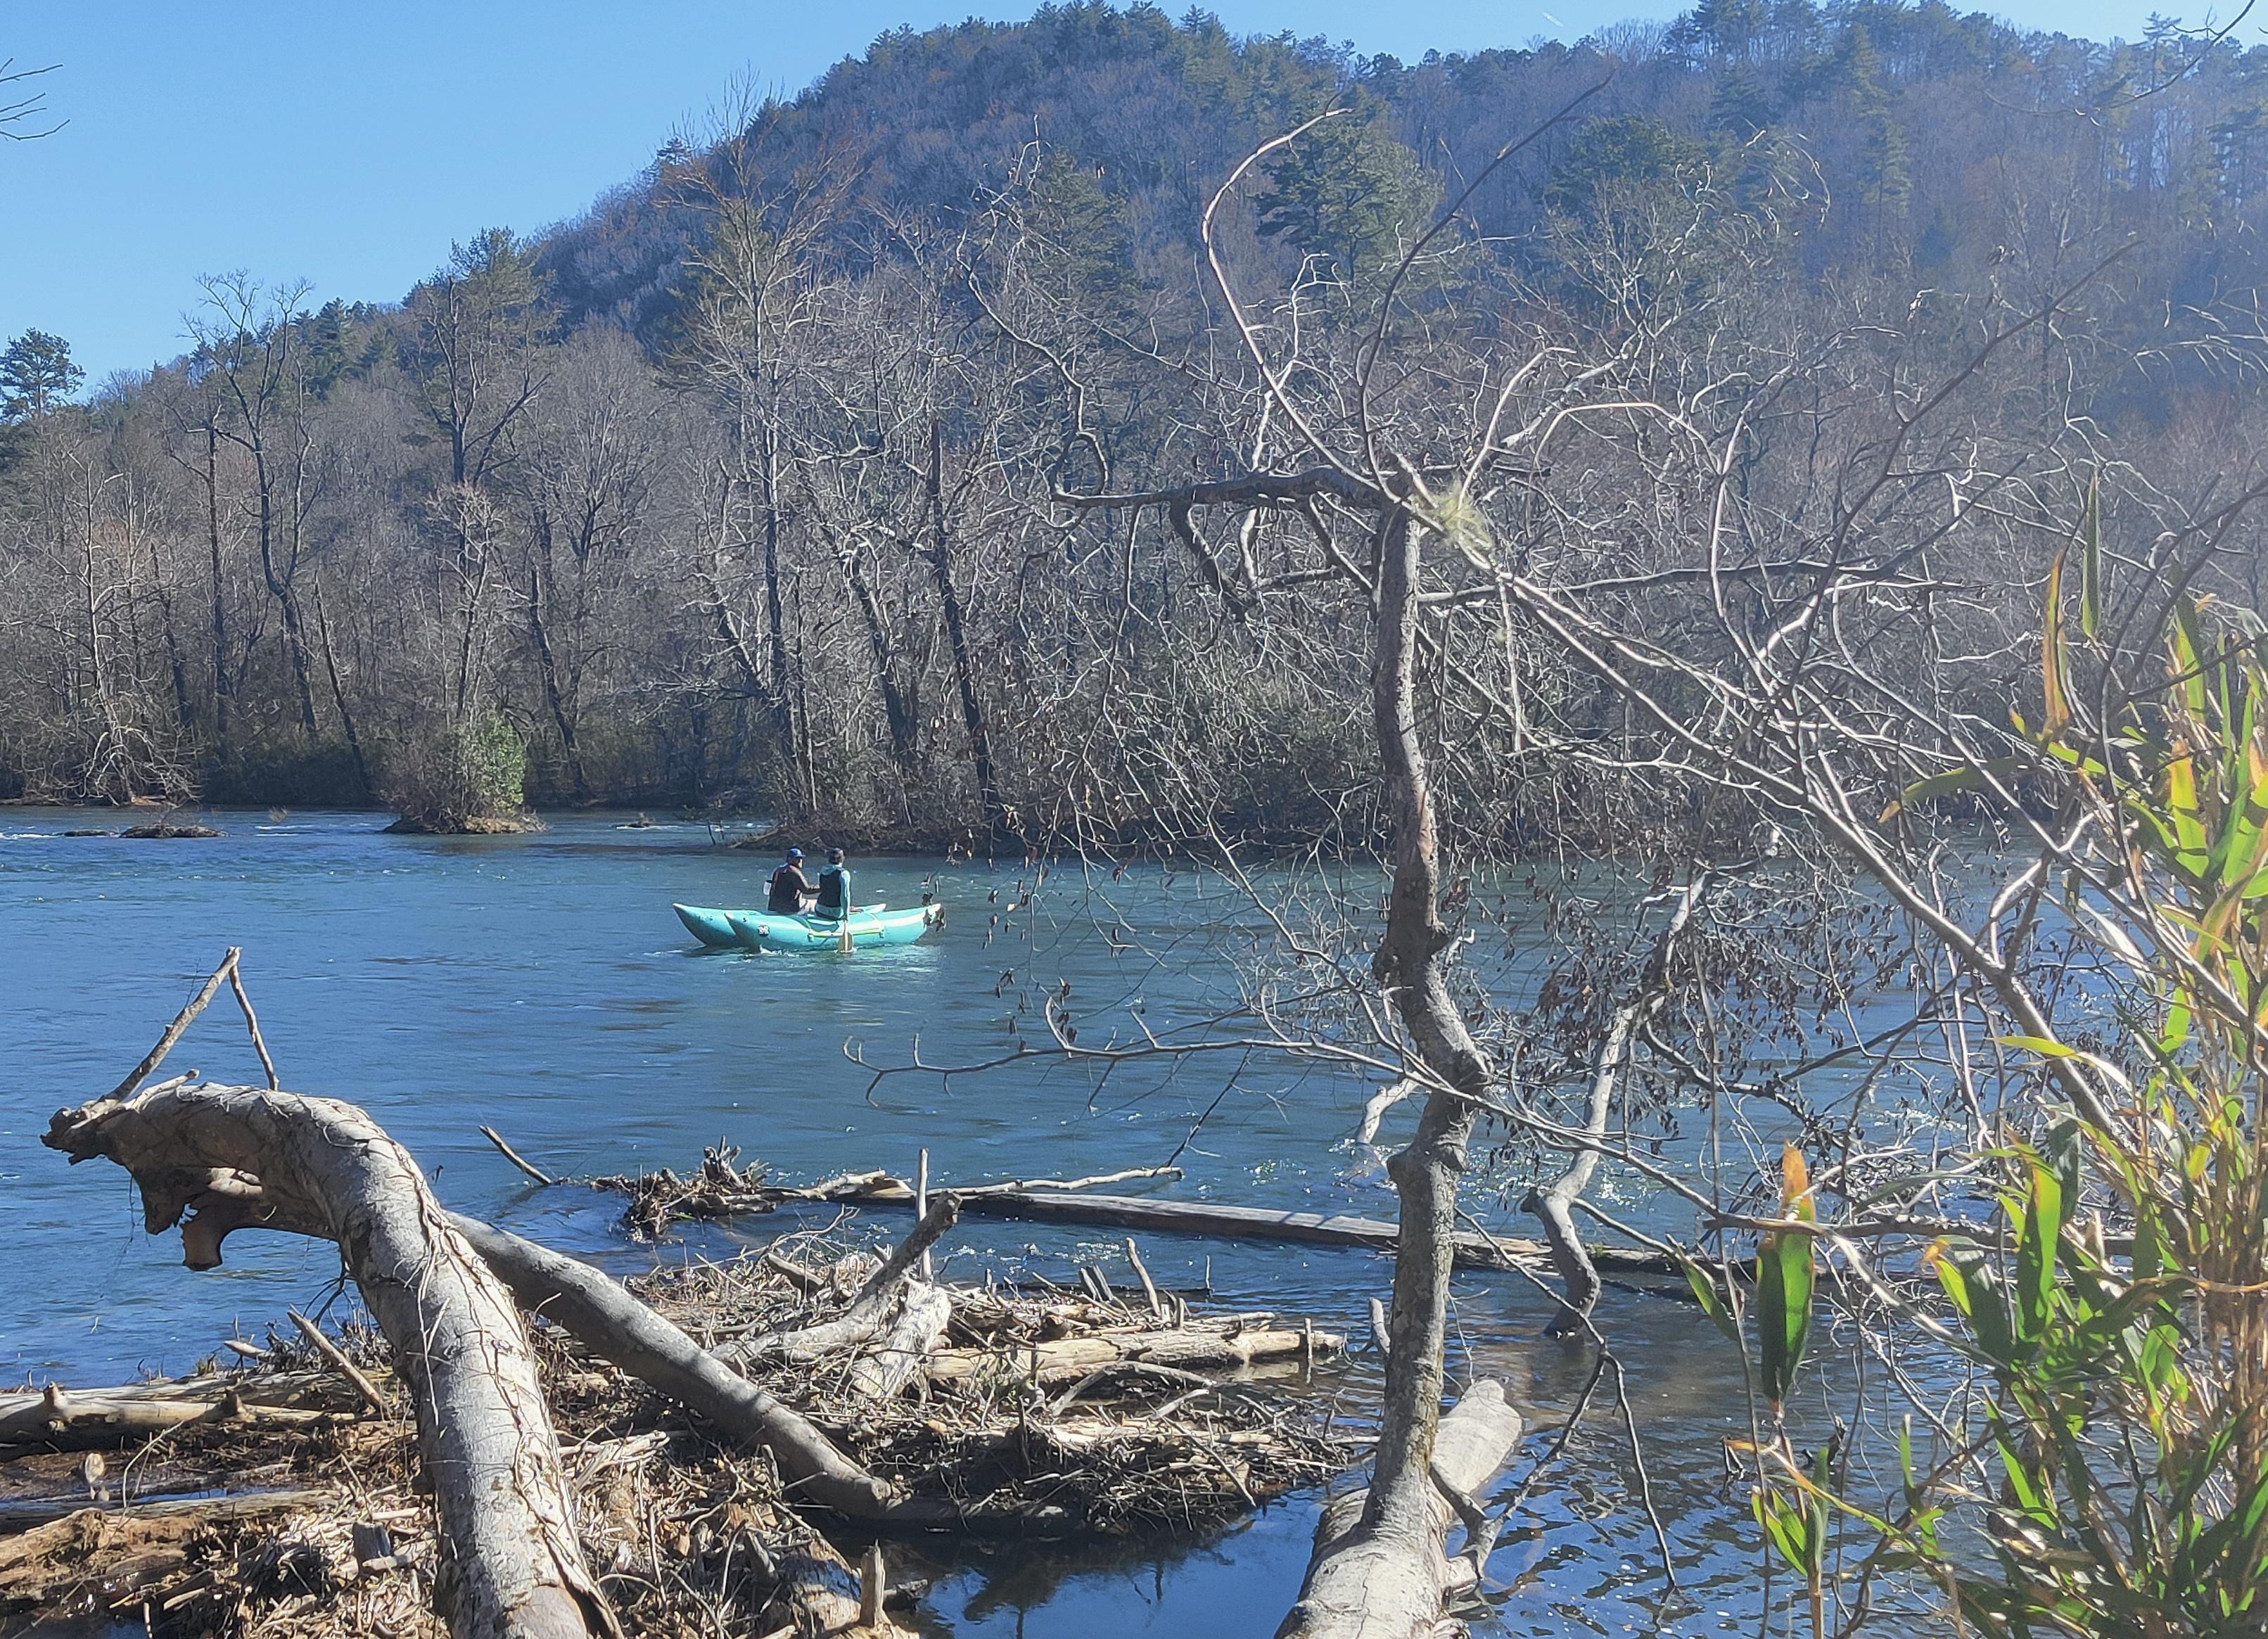 Tennessee's Hiwassee River is a diverse blueway with three distinct sections.